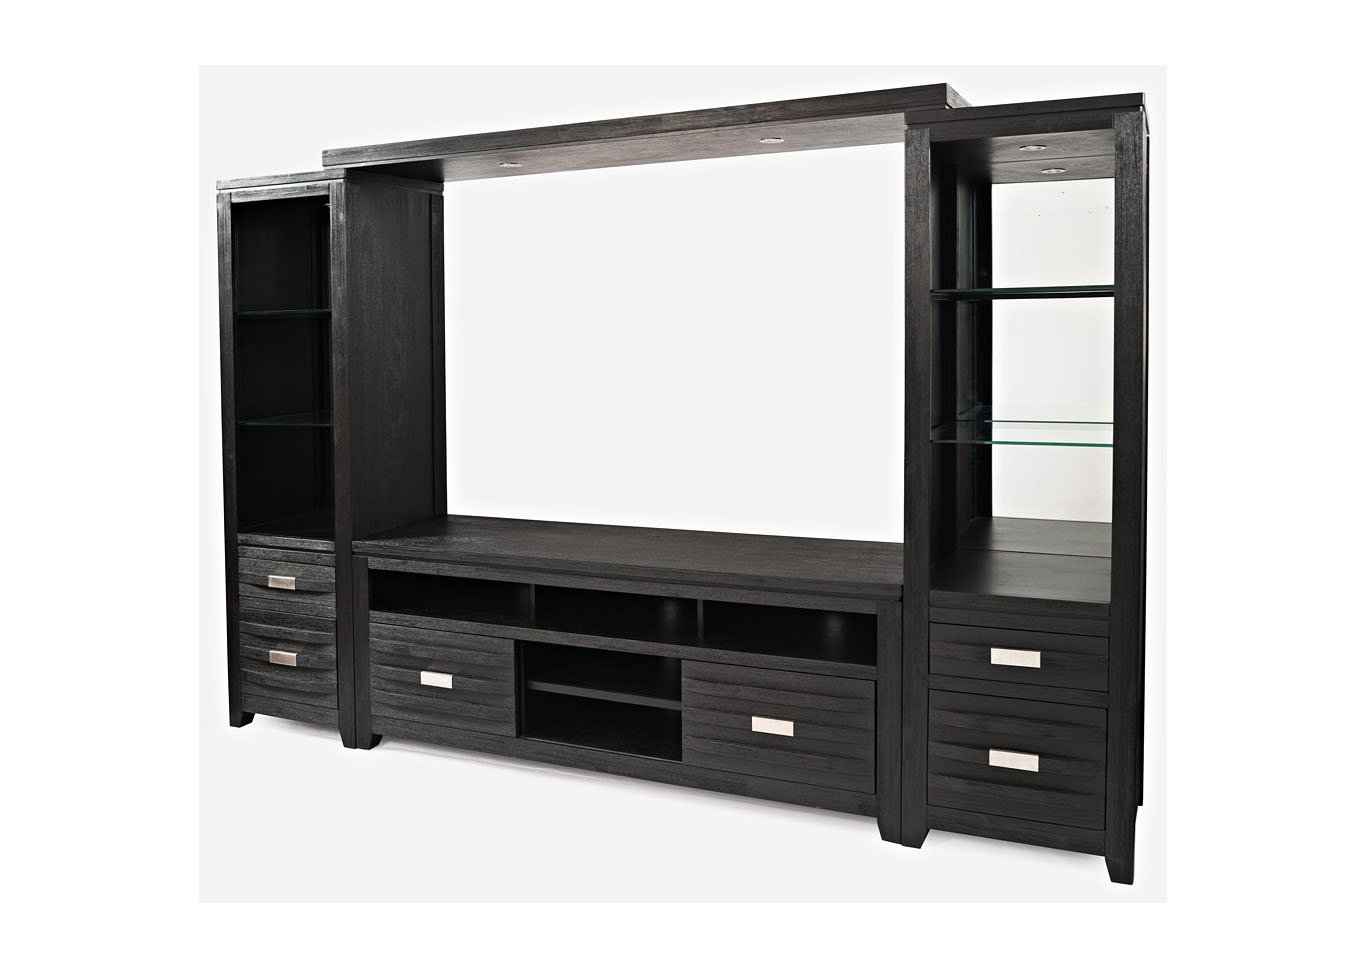 Altima Entertainment Wall with 70 Inch TV Stand,Instore